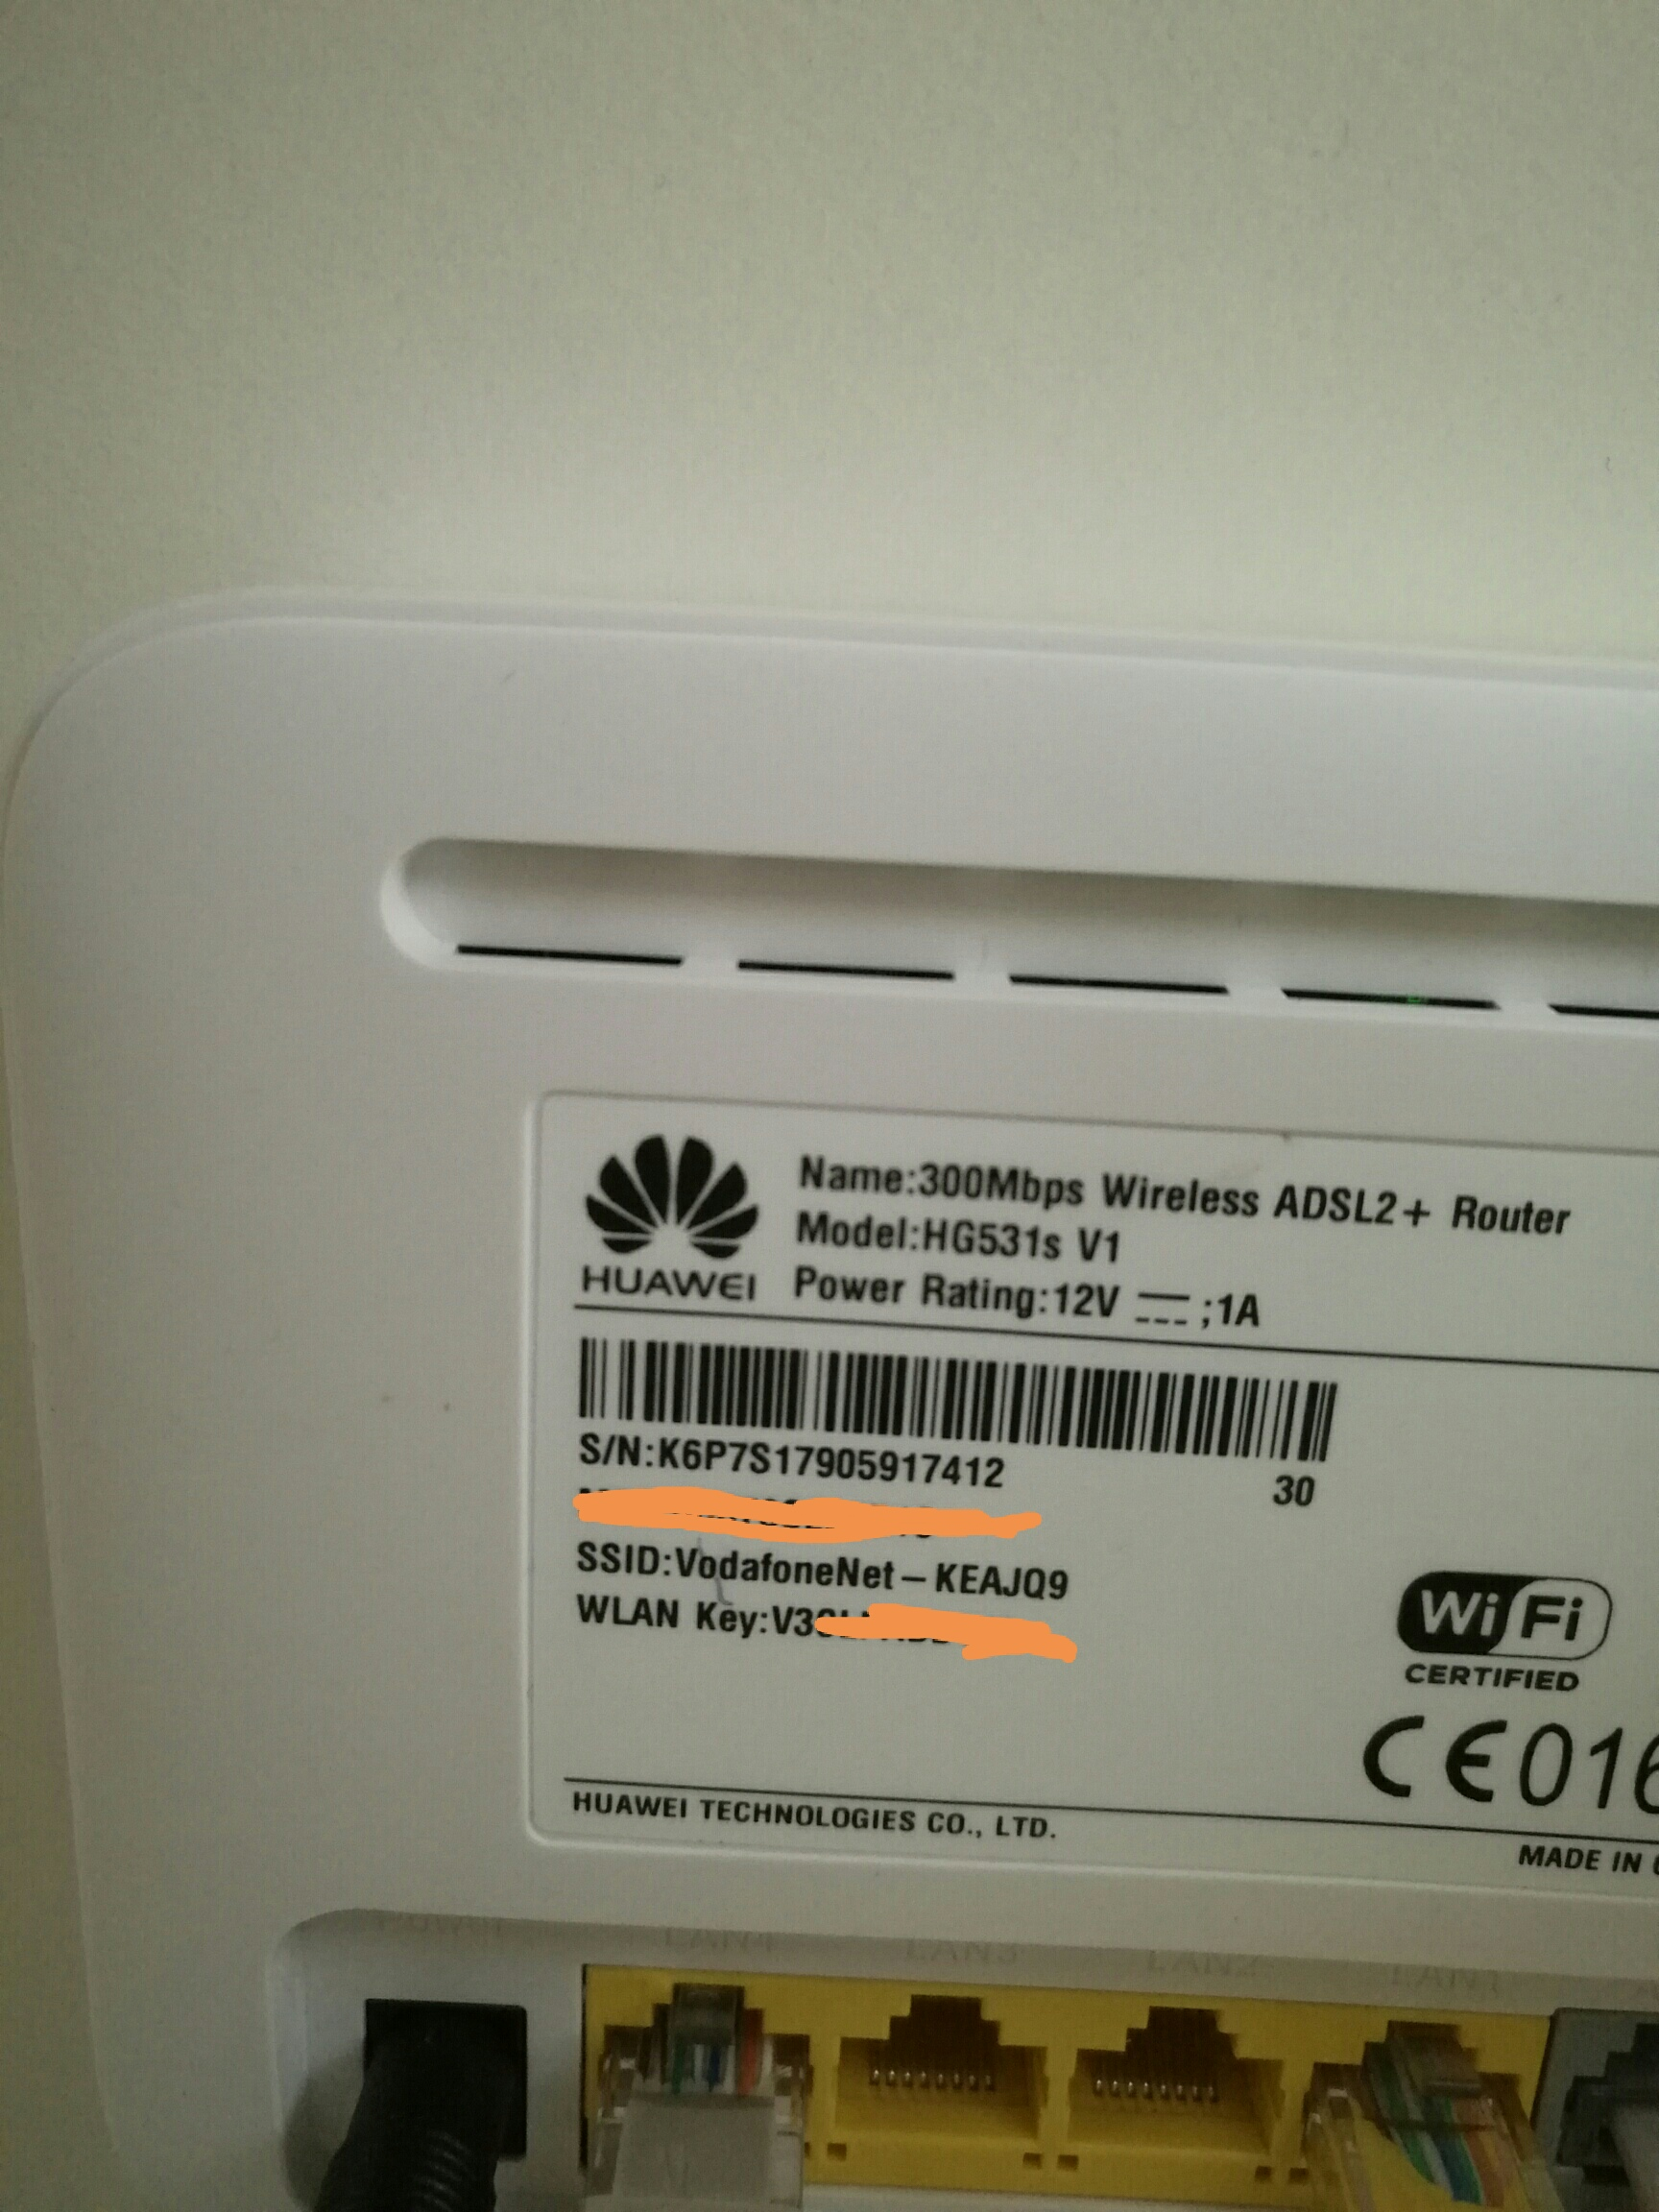 Unable to connect Ethernet Shield to new Router - Need Help With My ...